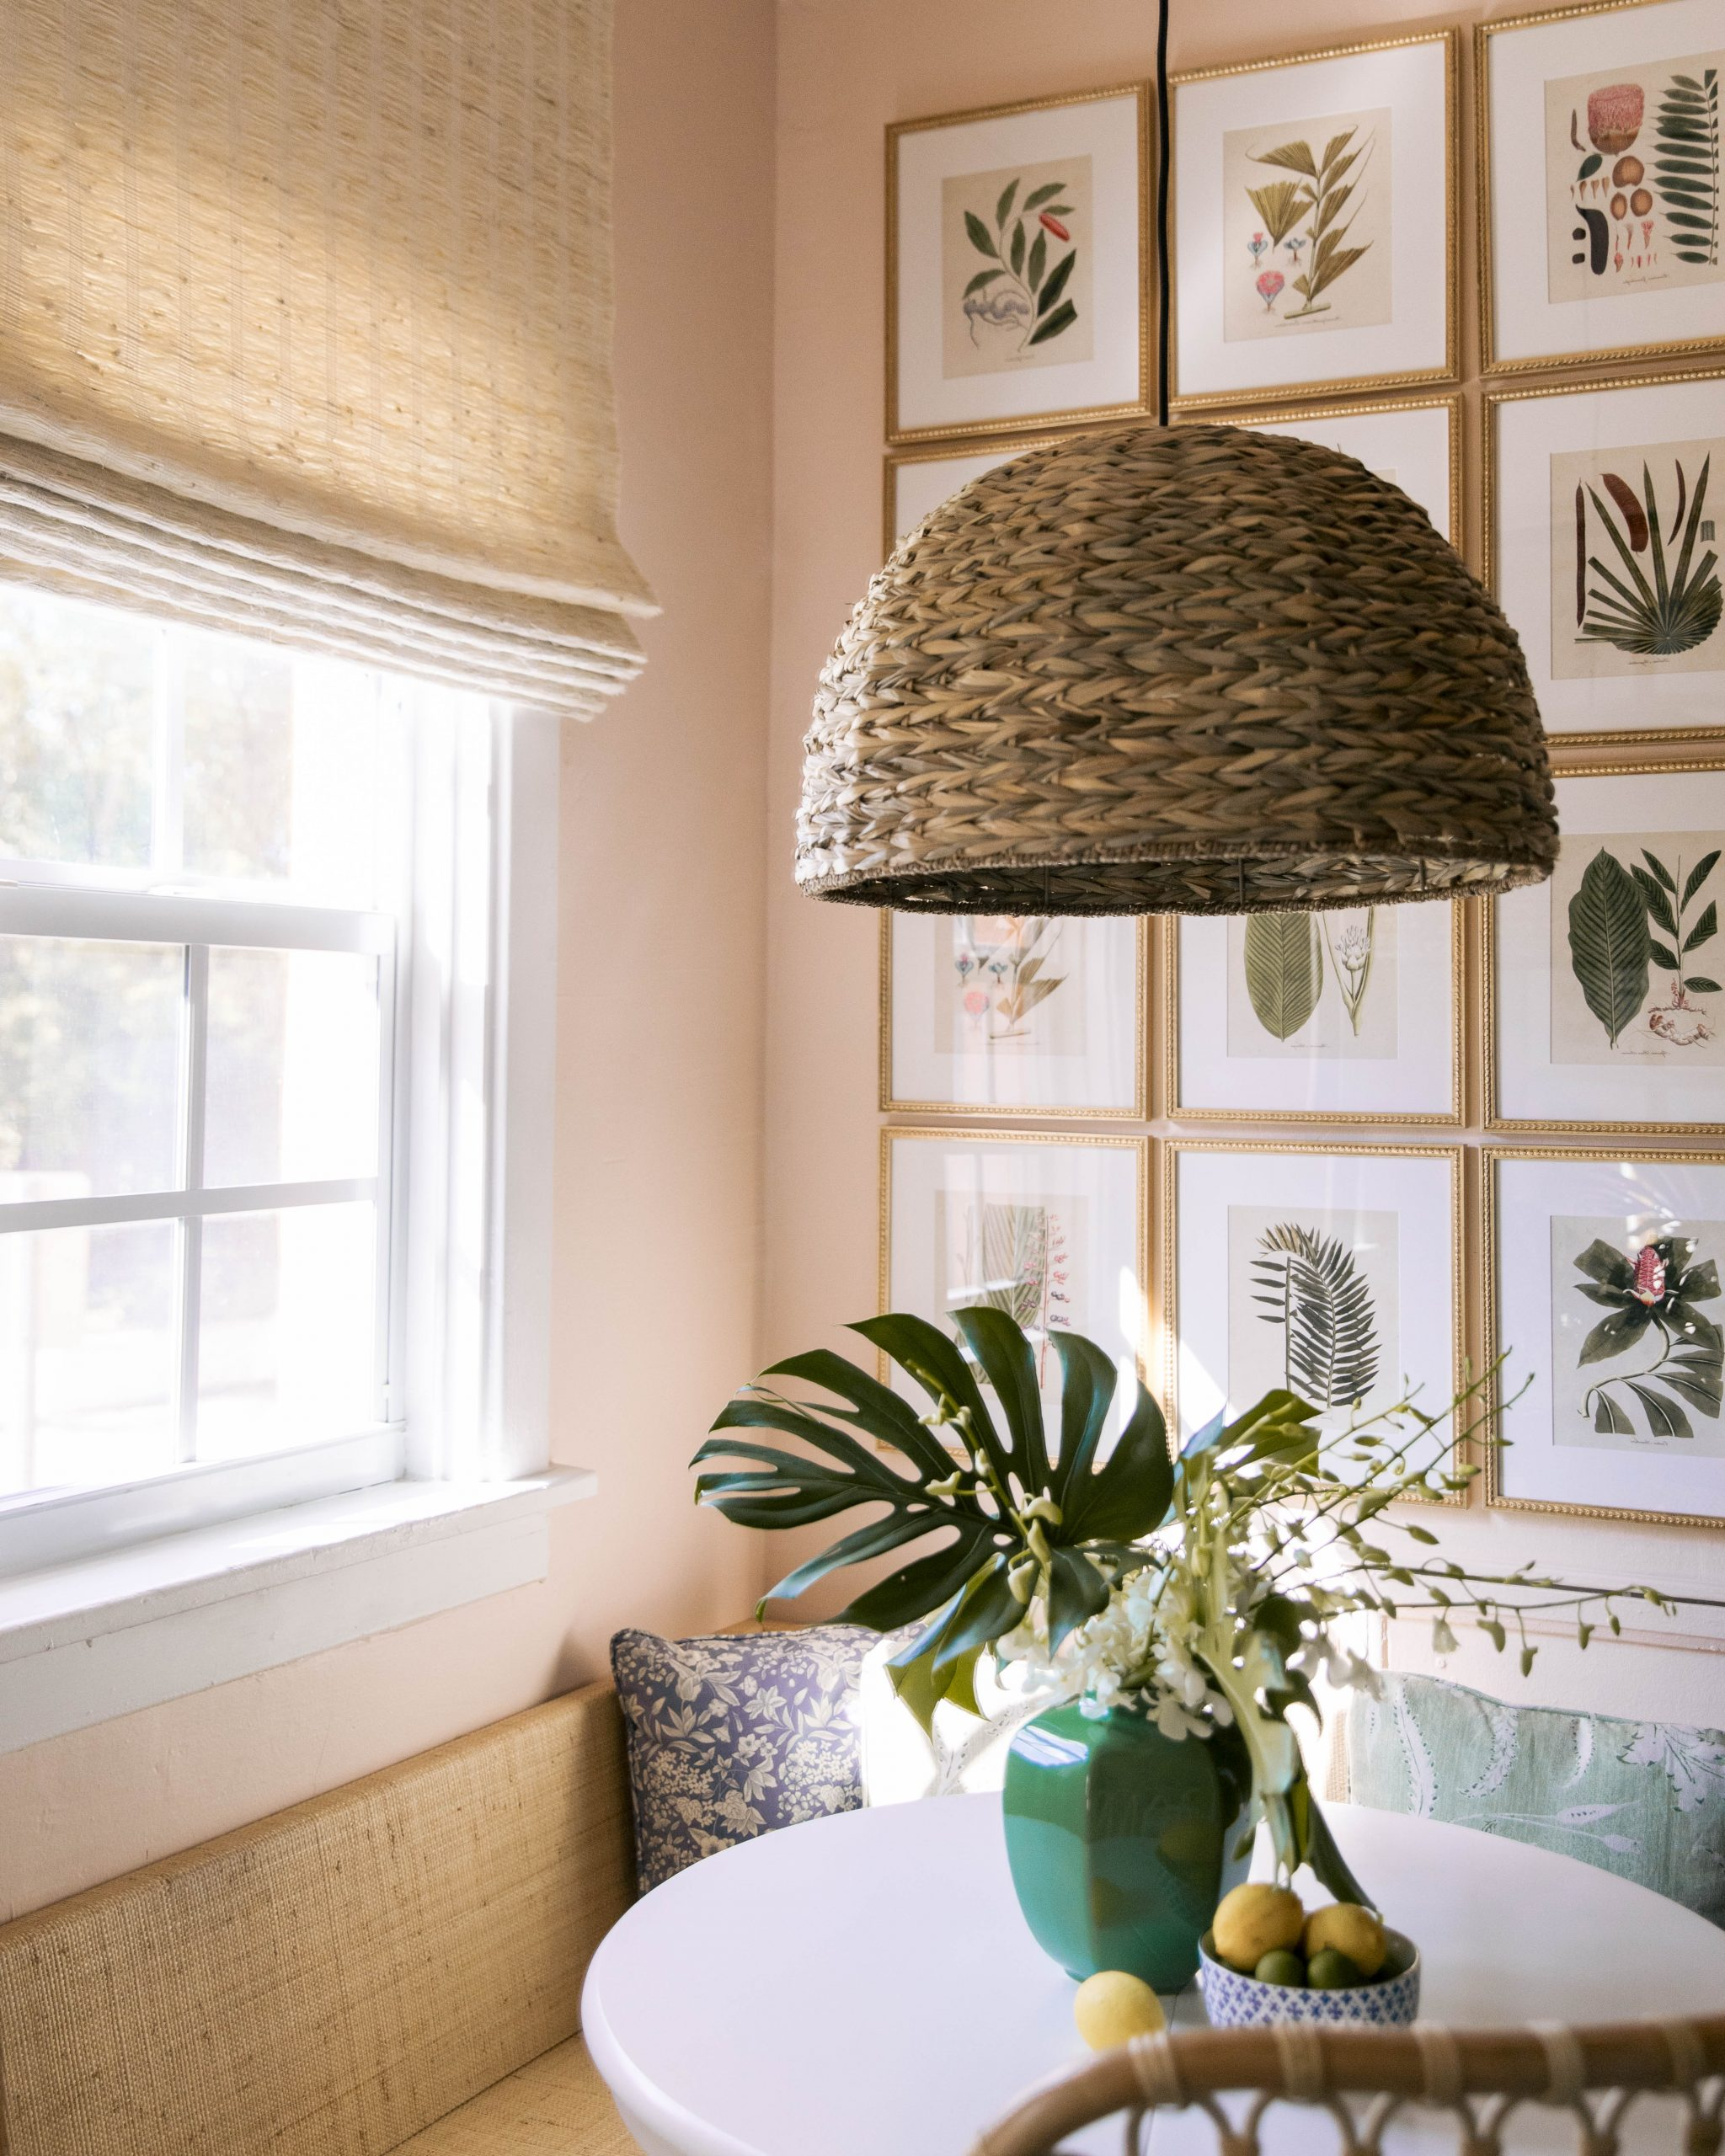 Stephanie Hill shares 5 Little Ways to Upgrade a Rental Kitchen on The Style Bungalow